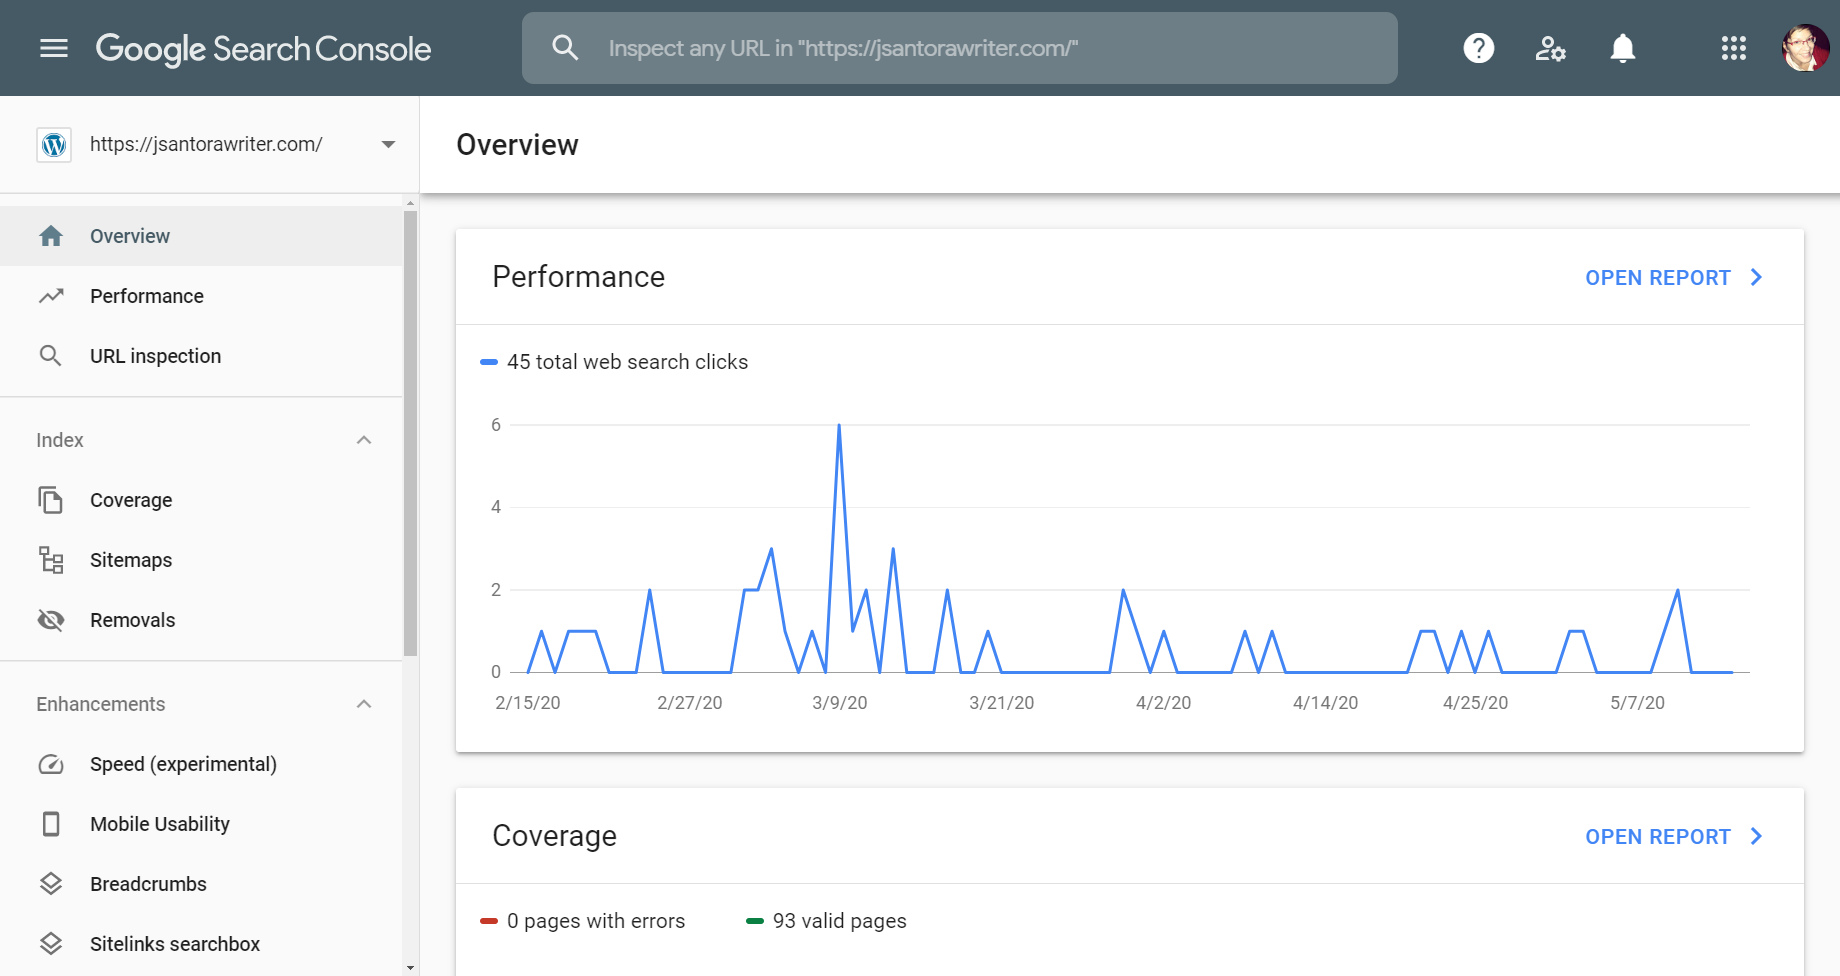 google search console overview